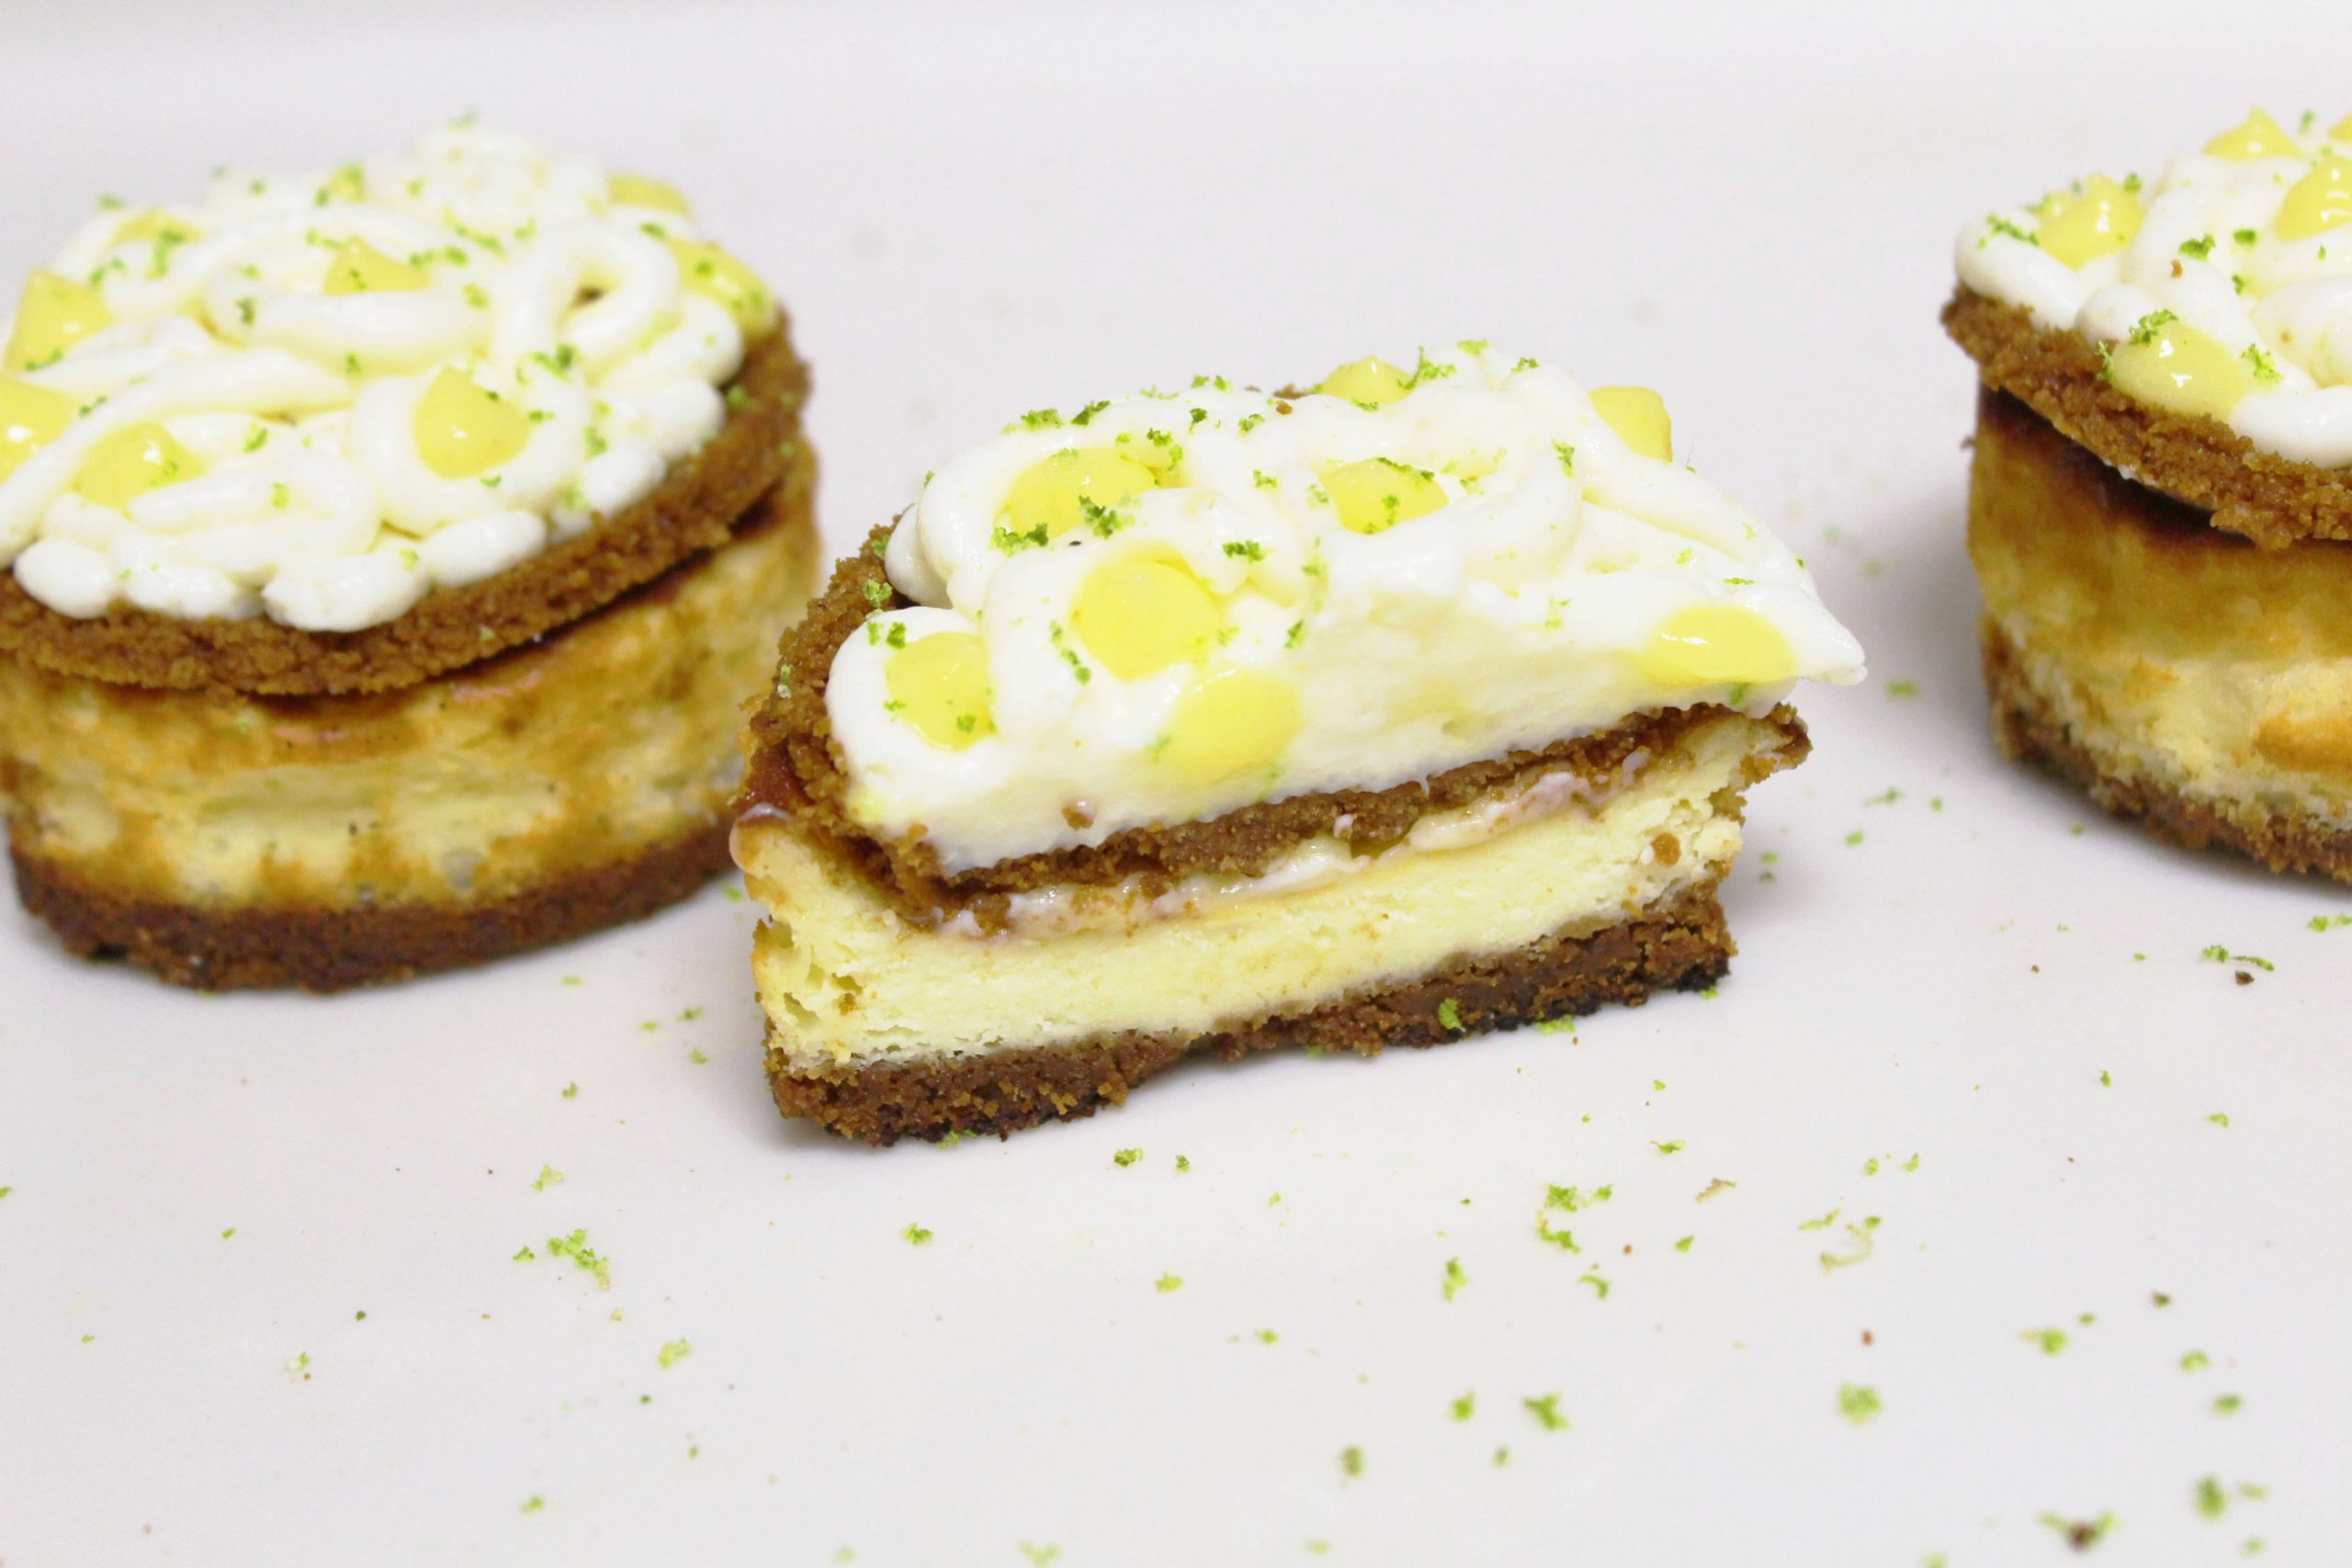 Baked Lemon and Speculoos Cheesecake